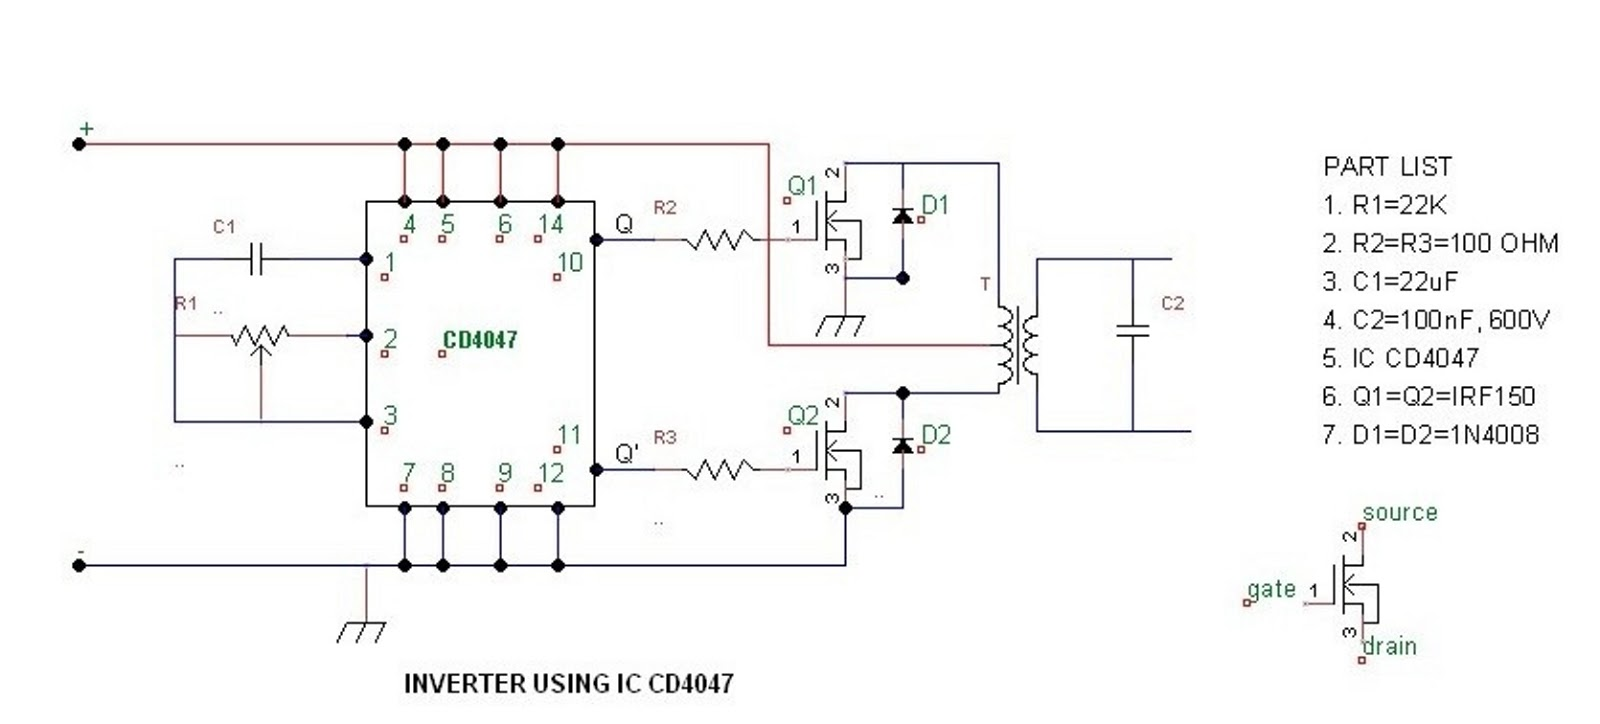 100 W Inverter Circuit Diagram Wiring Library Ruud Furnace 90 21283 Wich Can Use Ic 4047 In How To Build A100 Watt Pure Sine Wave